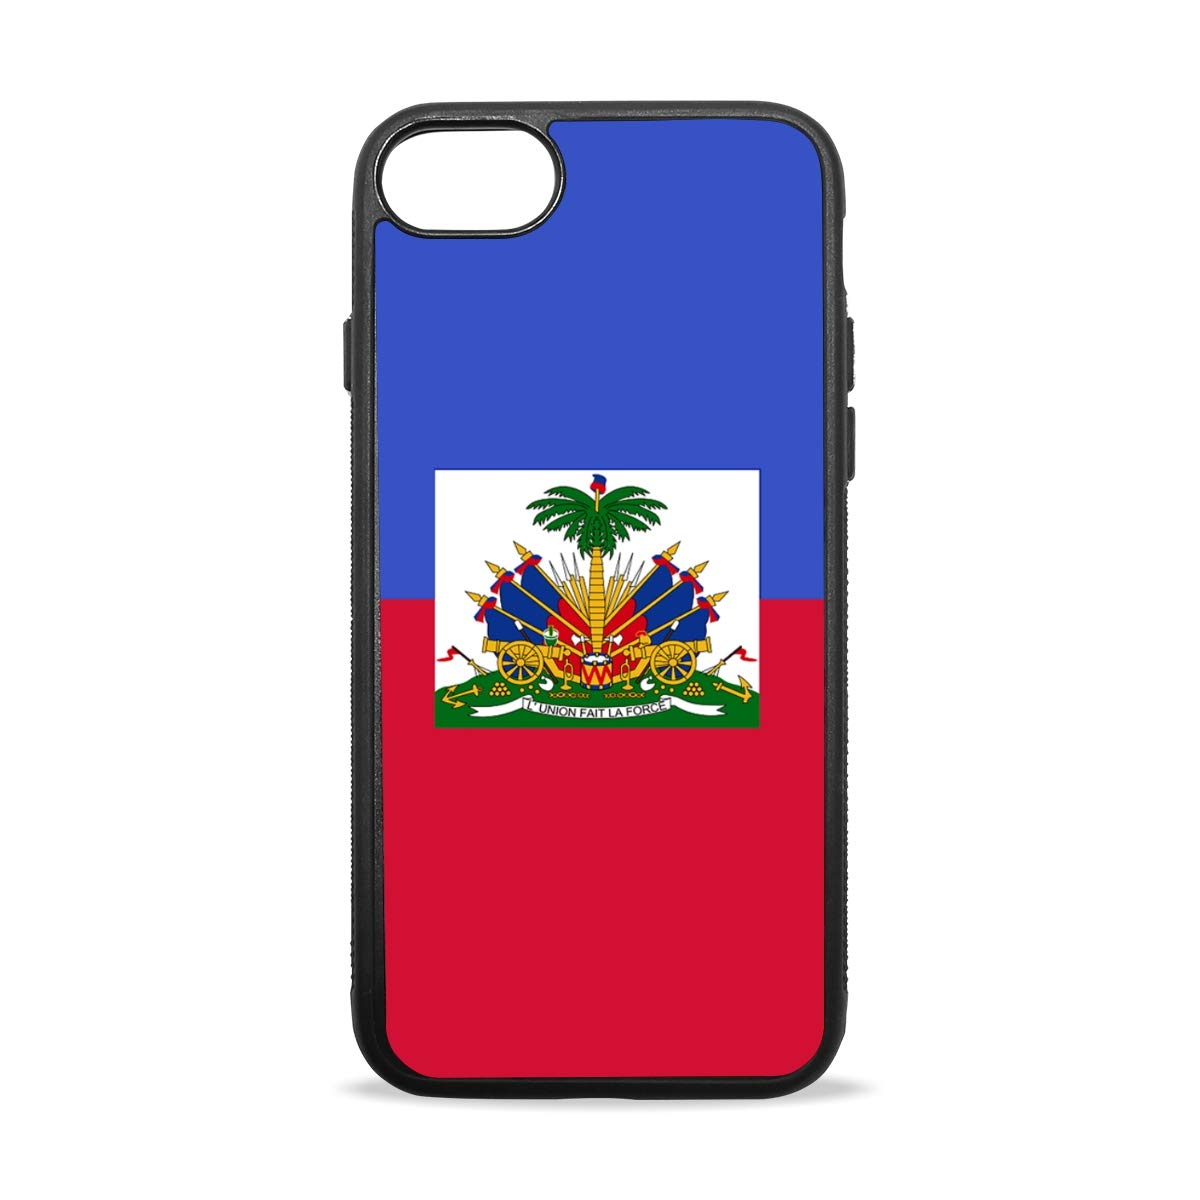 Apple Case Shockproof Slim TPU Protective Cover Haitian Flag Soft Rubber Silicone Cover Phone Case Compatible with iPhone 7/8 iPhone 7/8 Plus [4.7 inch/5.5 inch]